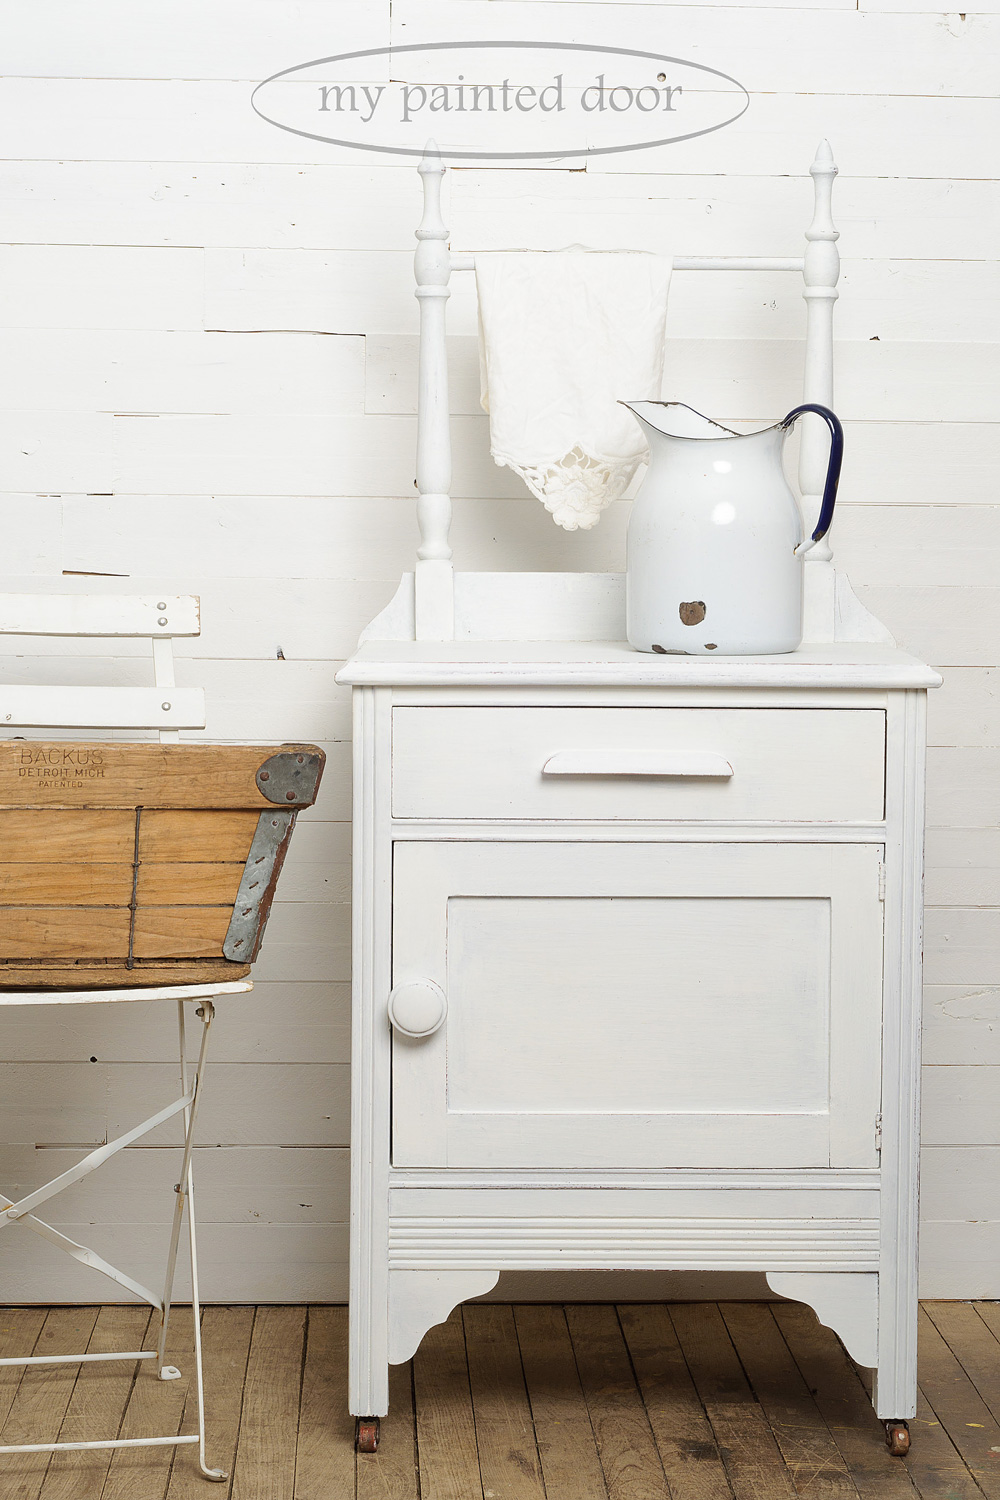 Washstand painted in Miss Mustard Seed's milk paint in Ironstone - via My Painted Door (.com)